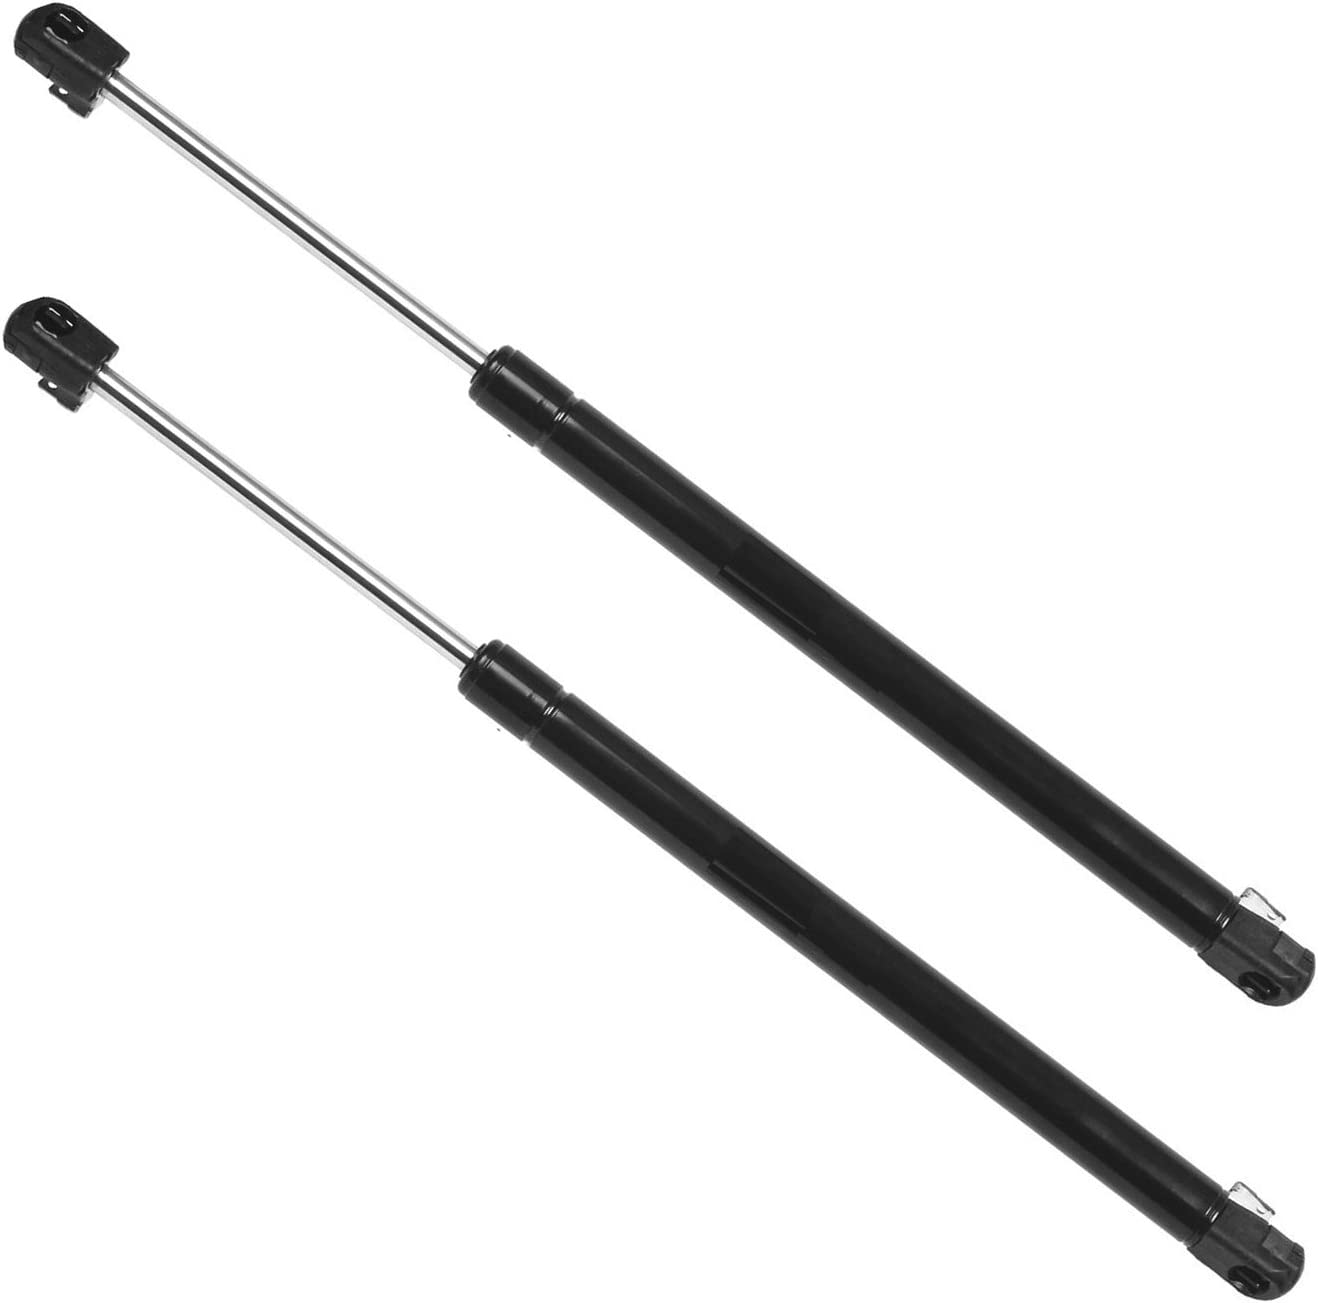 Rear Window Glass Lift Supports Struts Gas Springs Shocks For 1987-1995 Jeep Wrangler 4761 SG214008,Pack of 2